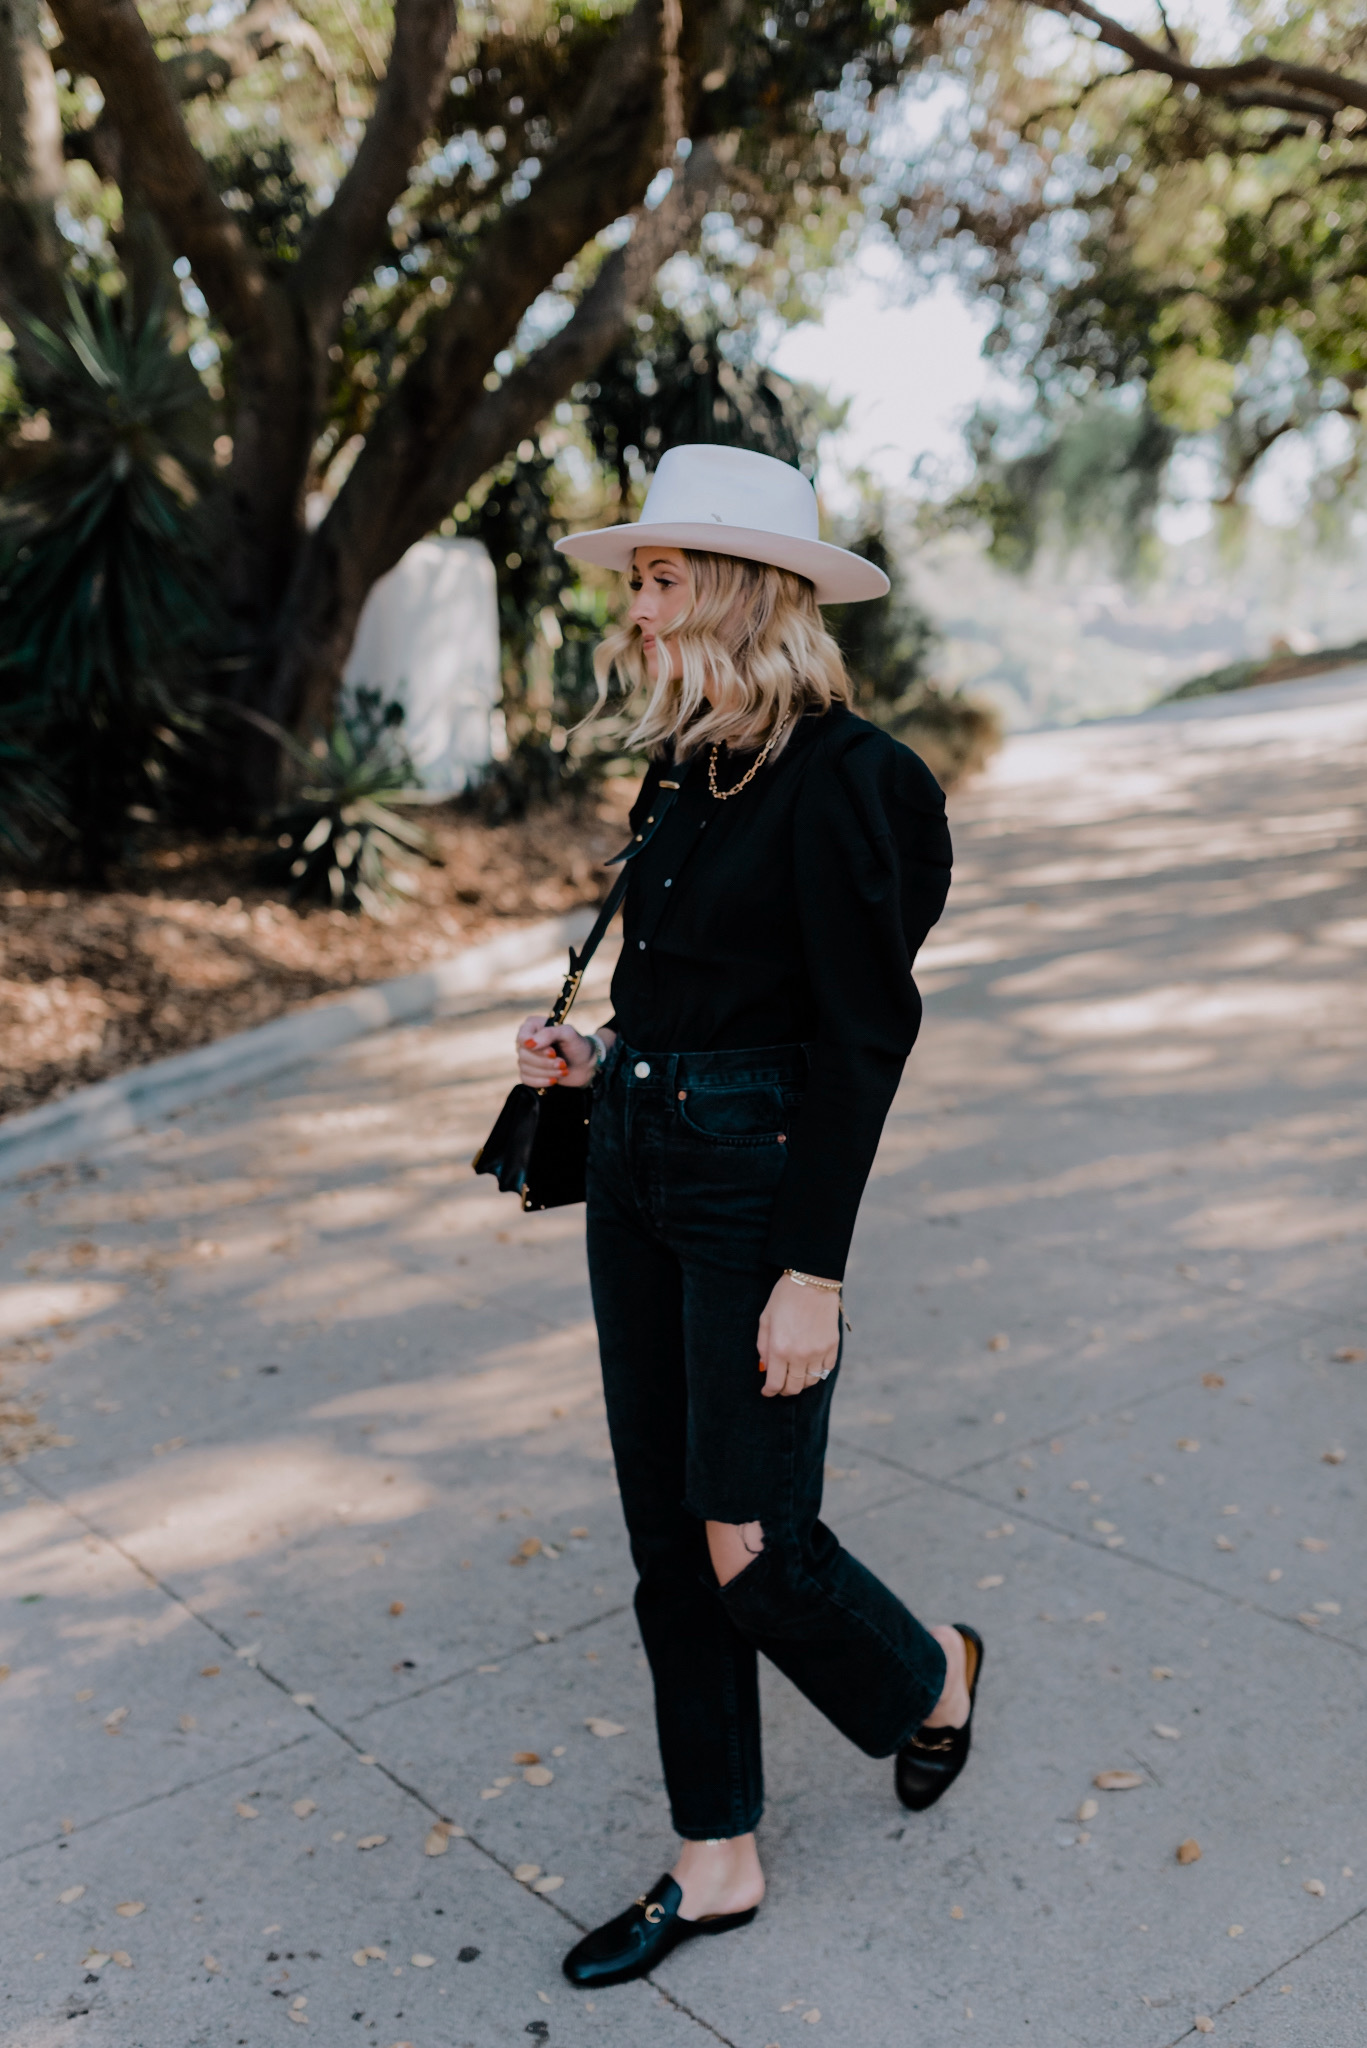 Black Clothing by popular San Diego fashion blog, Navy Grace: image of a woman walking outside and wearing a Express Puff Sleeve Button Front Top,Chicago Ripped Knee High Waist Dad Jeans TOPSHOP,Princetown Loafer Mule GUCCI, felt hat, and carrying a Prada Cashier shoulder bag.